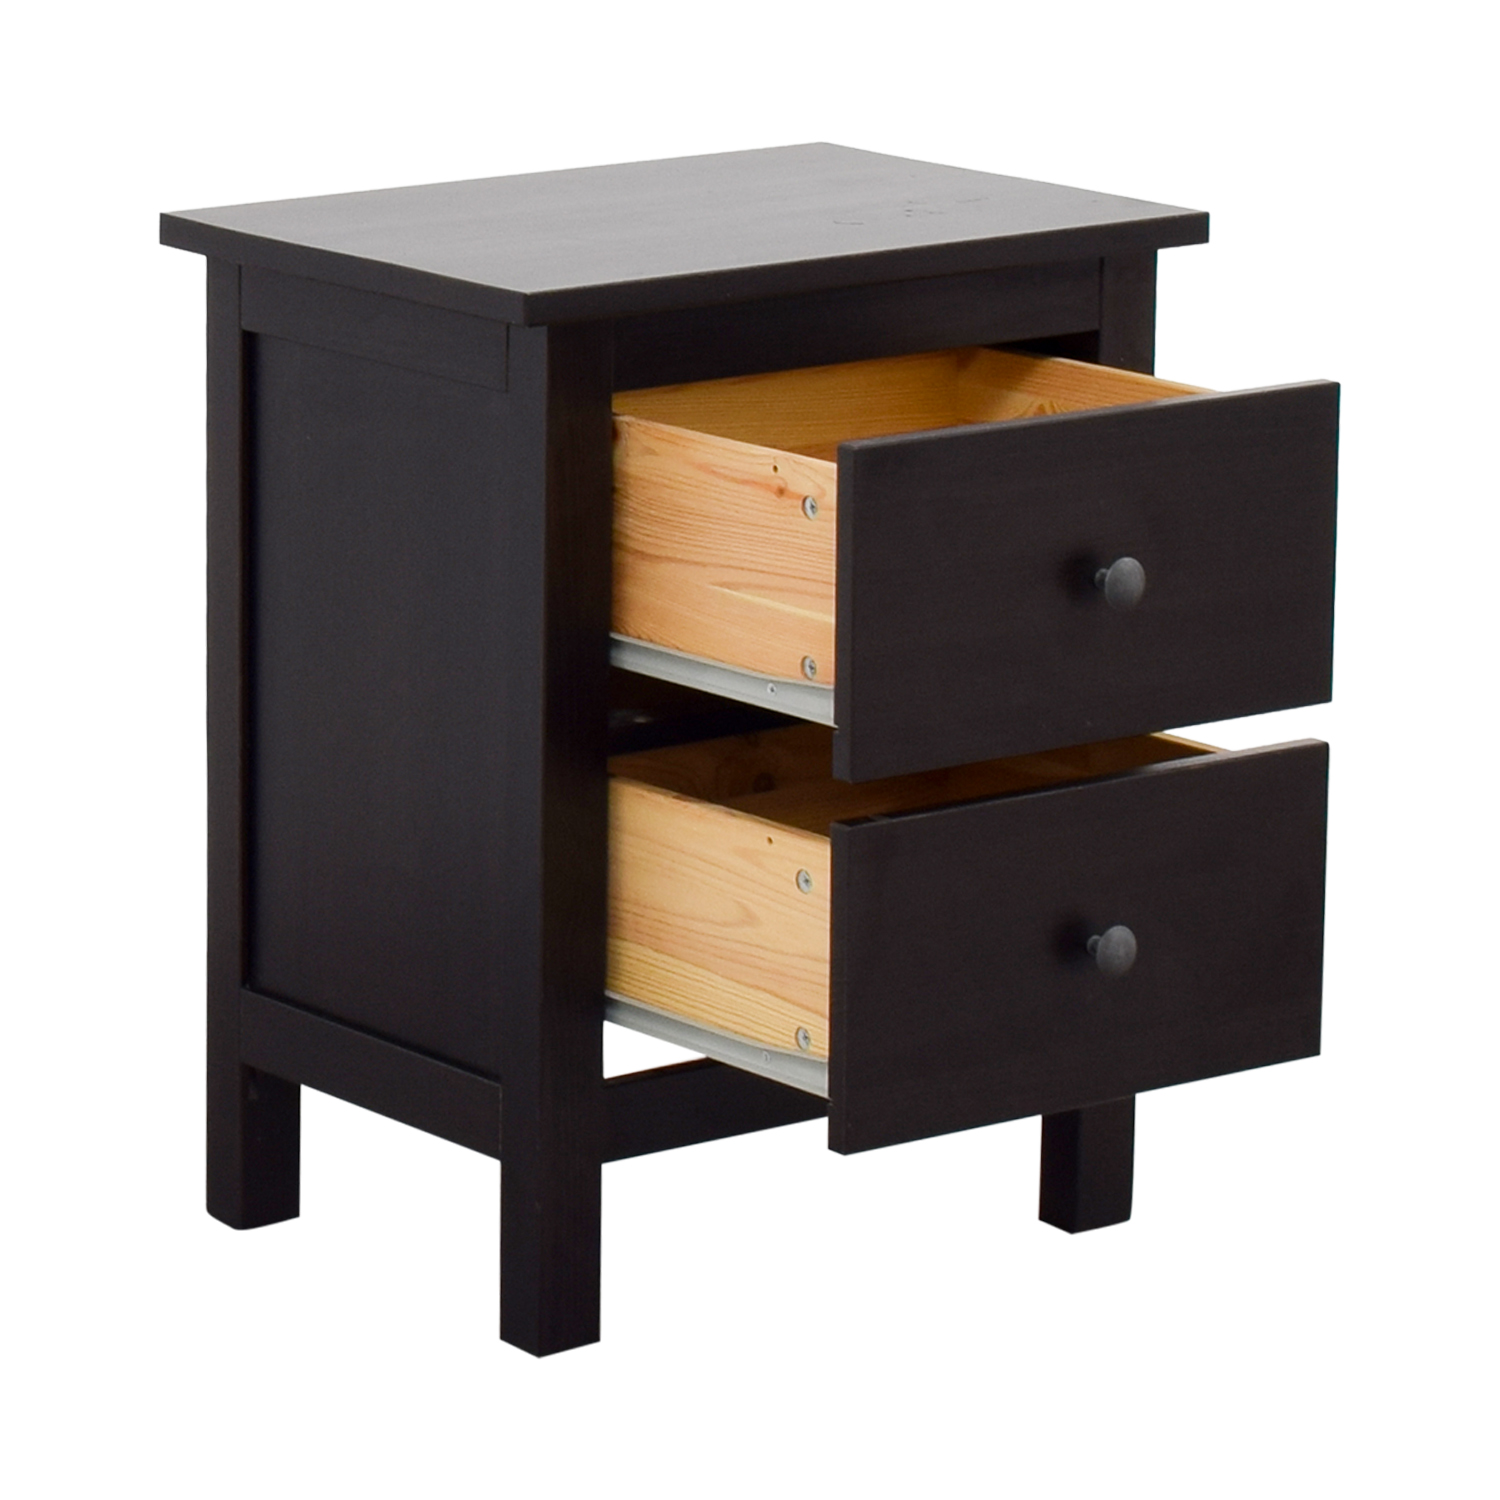 60 off ikea ikea hemnes two drawer chest tables. Black Bedroom Furniture Sets. Home Design Ideas